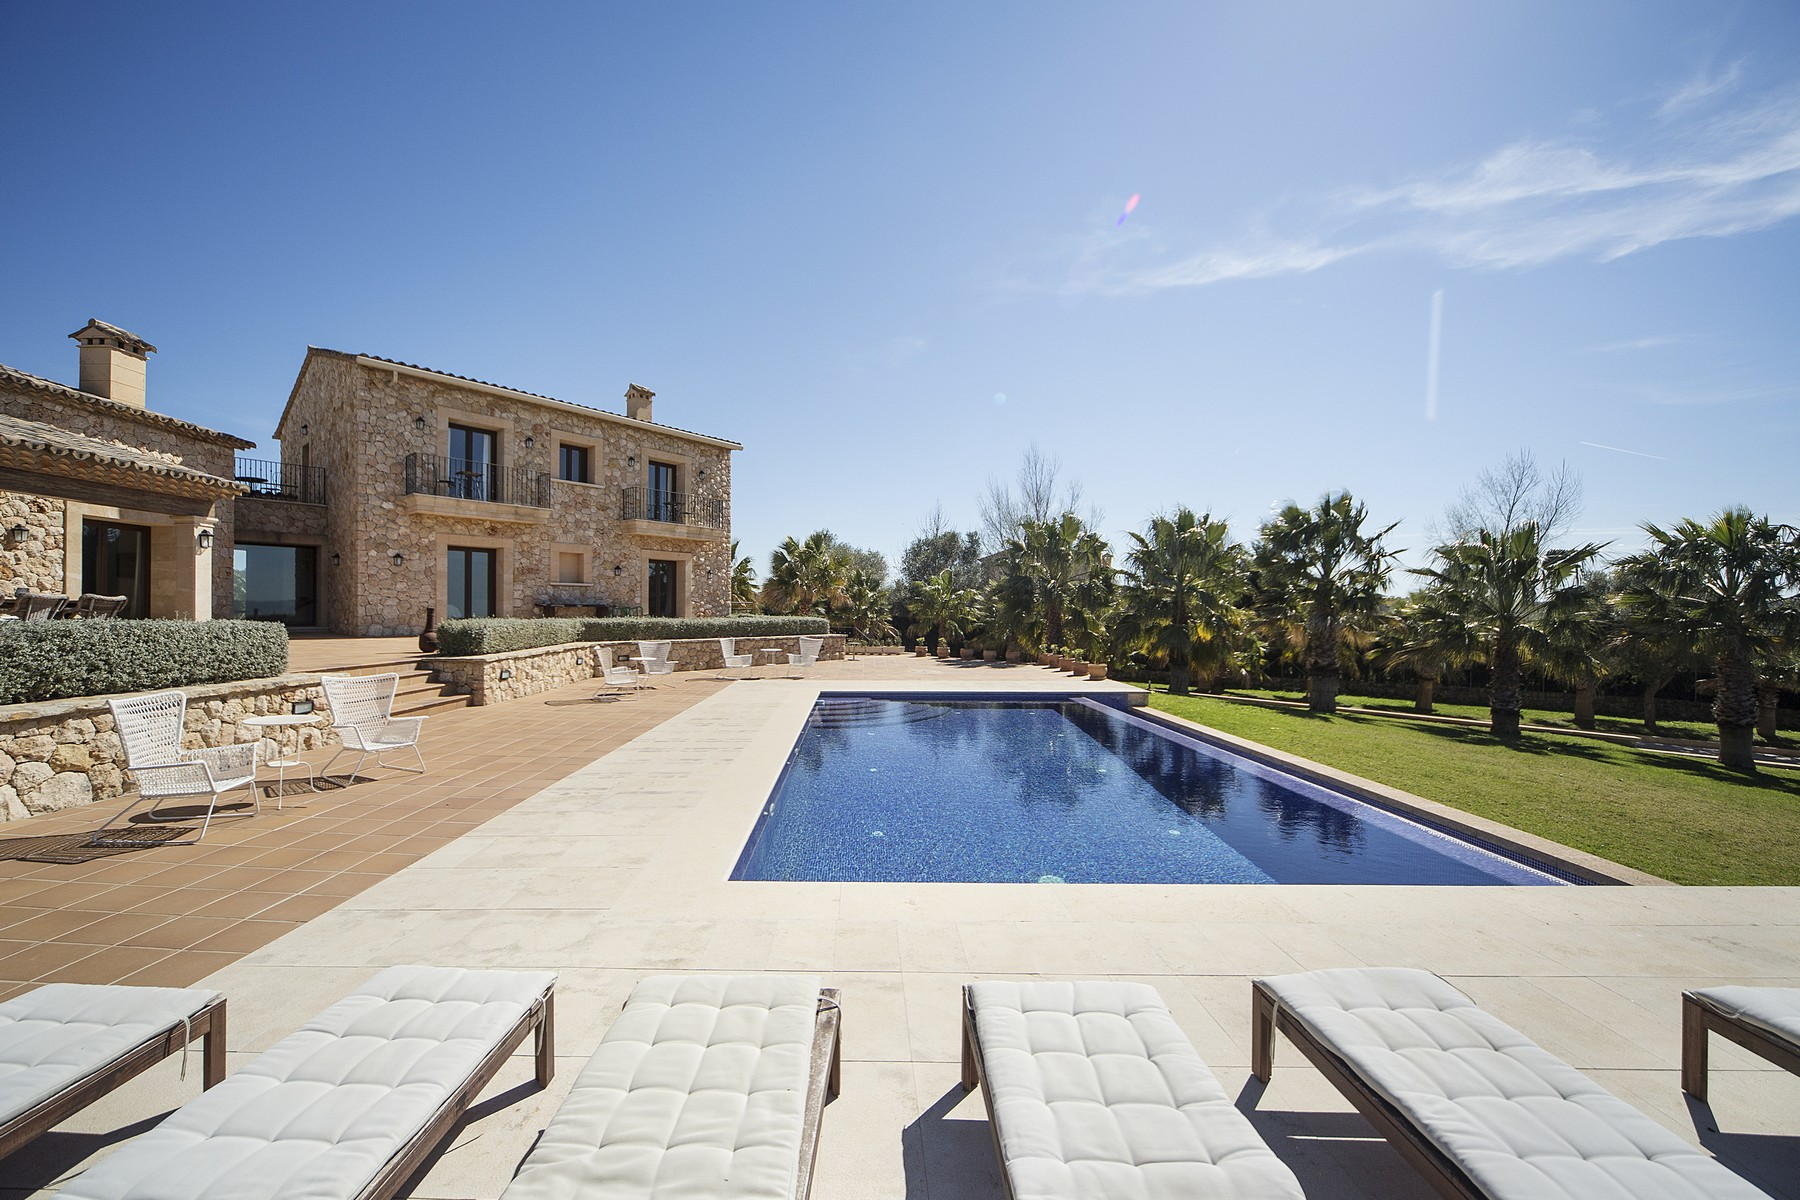 Single Family Home for Sale at Stunning, luxury Country Estate in Son Gual Other Balearic Islands, Balearic Islands, 07199 Spain